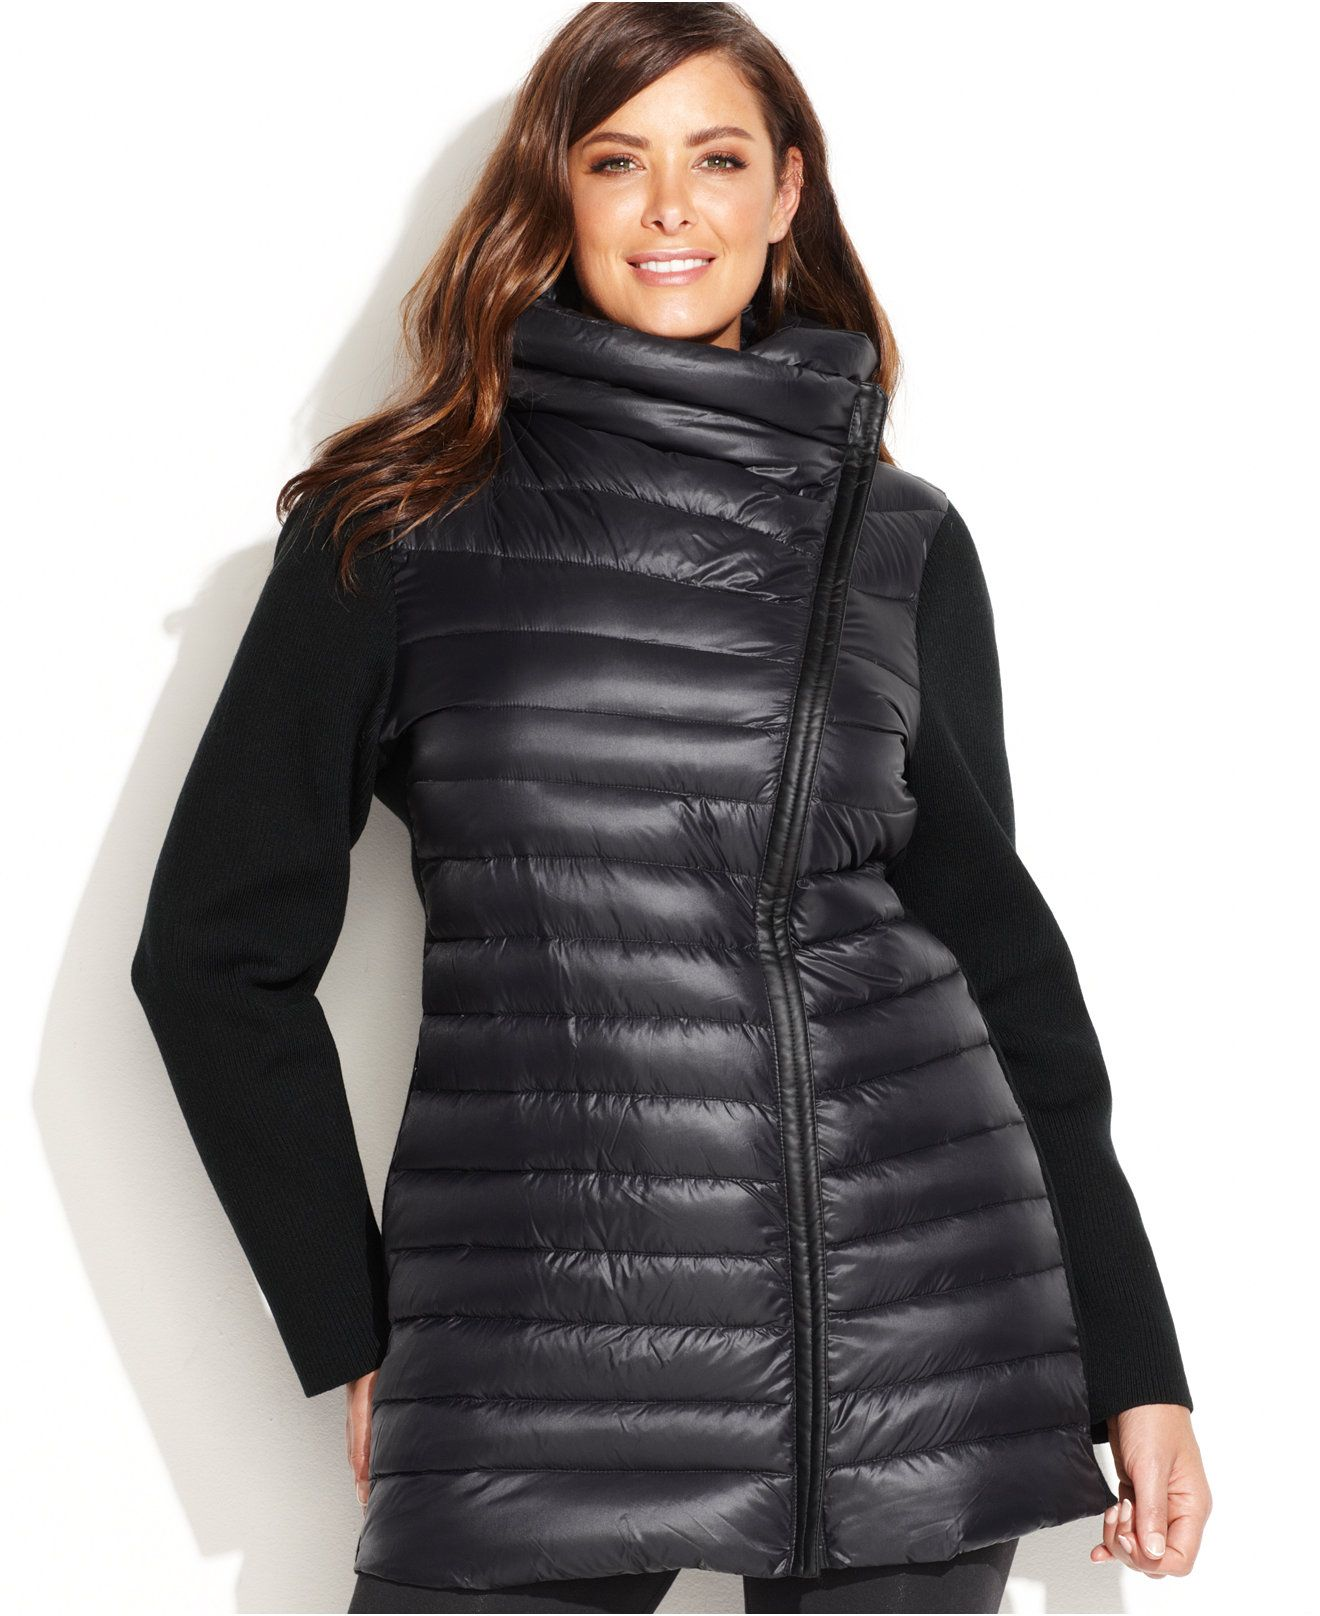 fc872f2d76d Calvin Klein Performance Plus Size Asymmetrical Puffer Jacket - Activewear  - Plus Sizes - Macy s